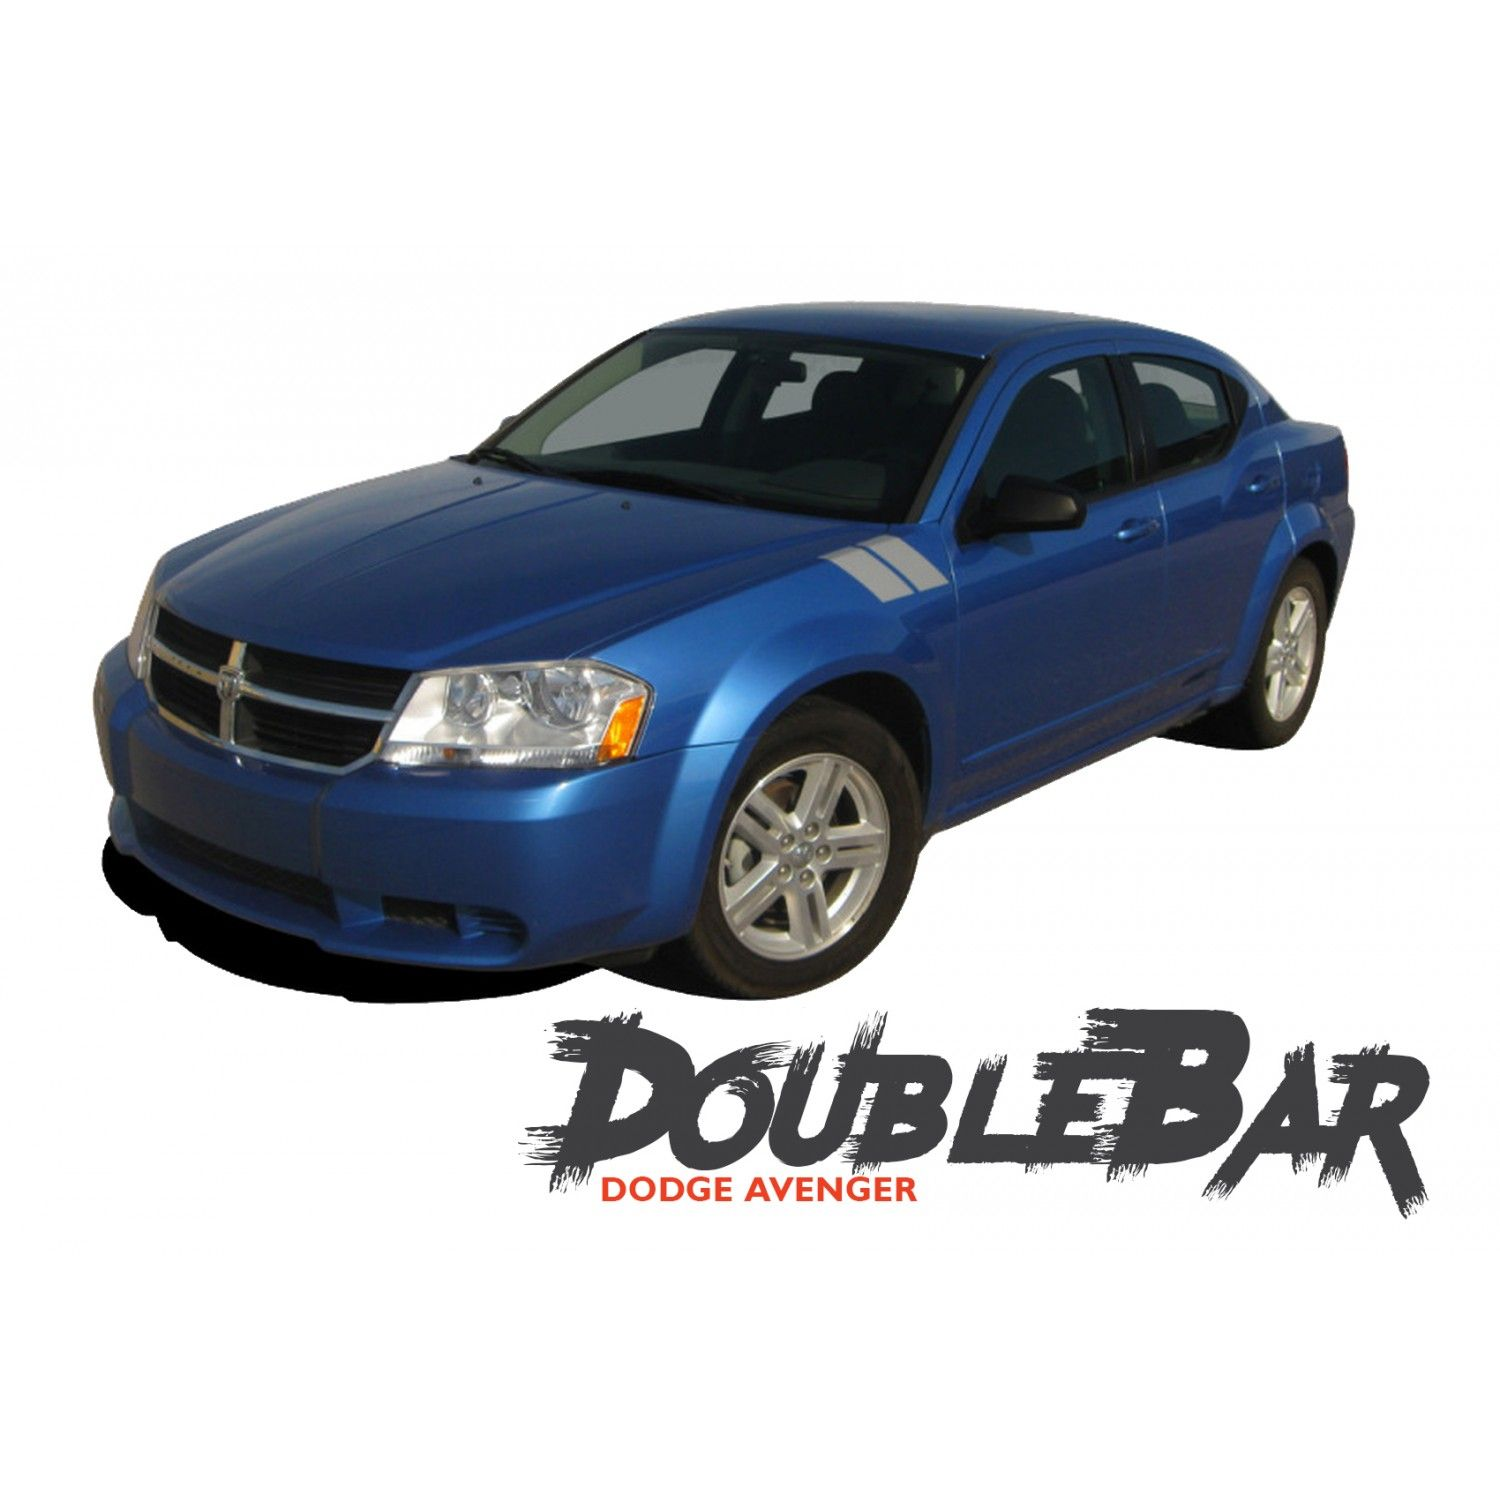 2008 2014 dodge avenger breakdown lower rocker stripes vinyl decal graphics pinterest dodge avenger dodge and cars